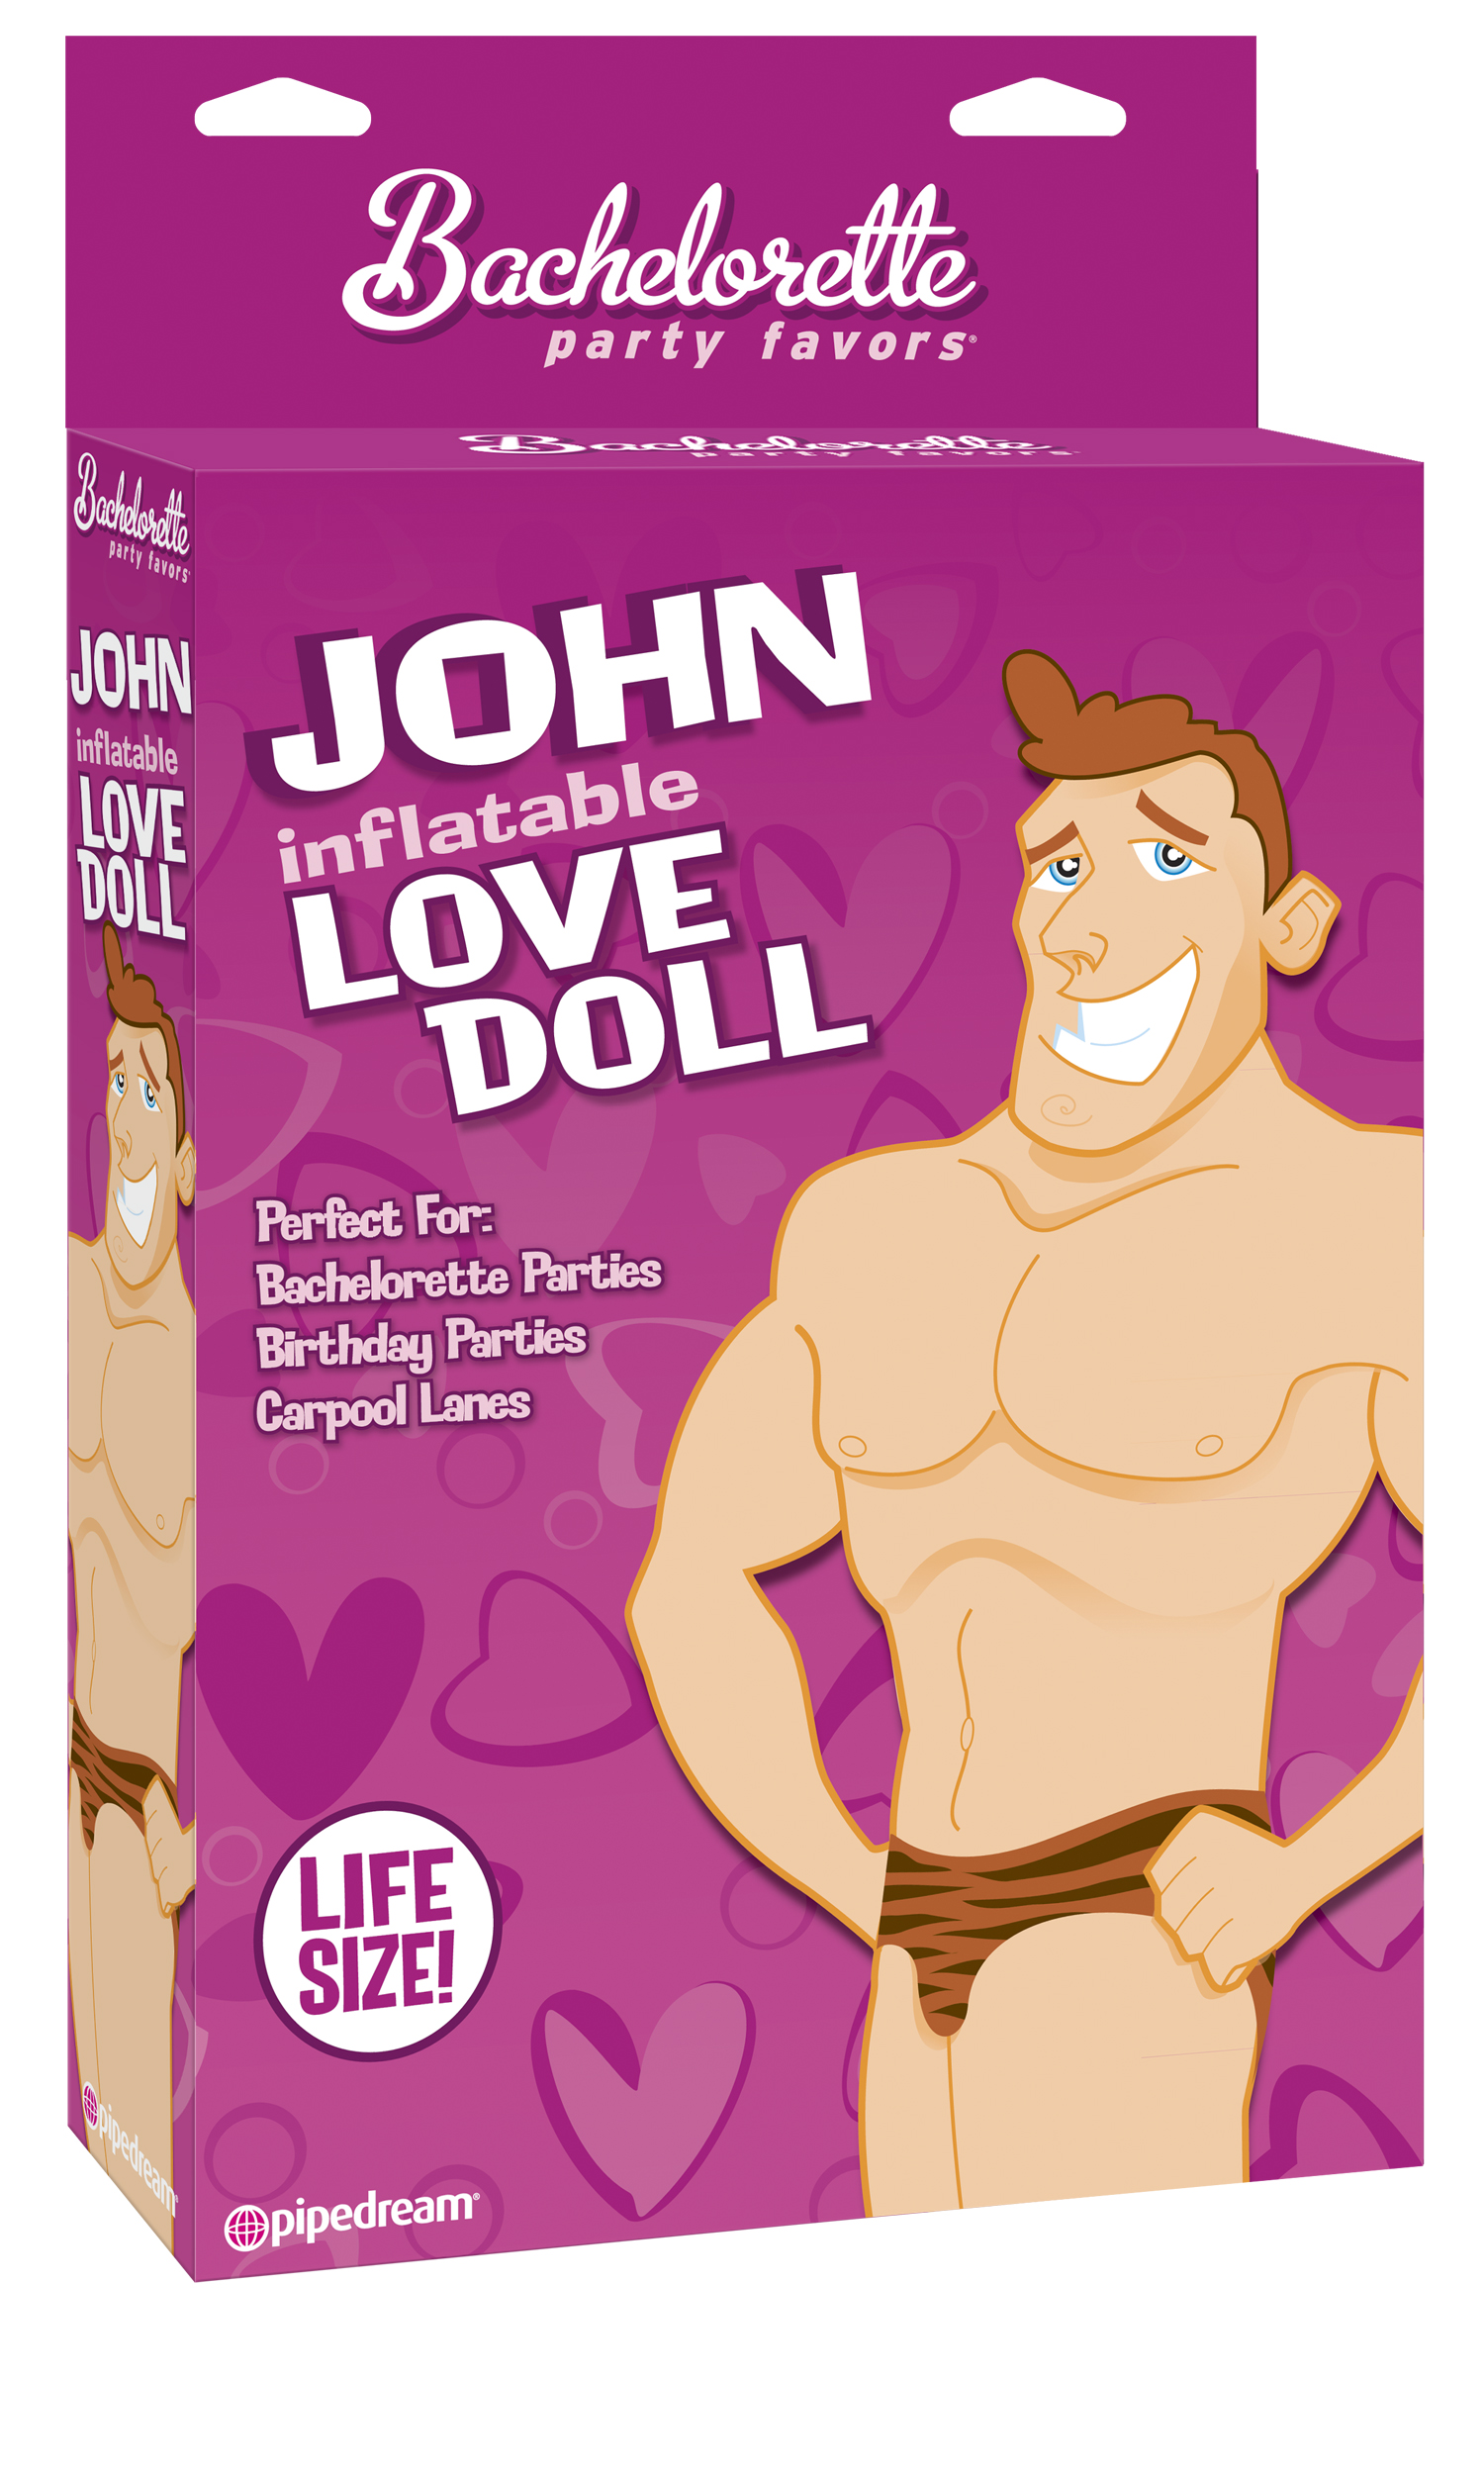 BACHELORETTE JOHN SEX DOLL